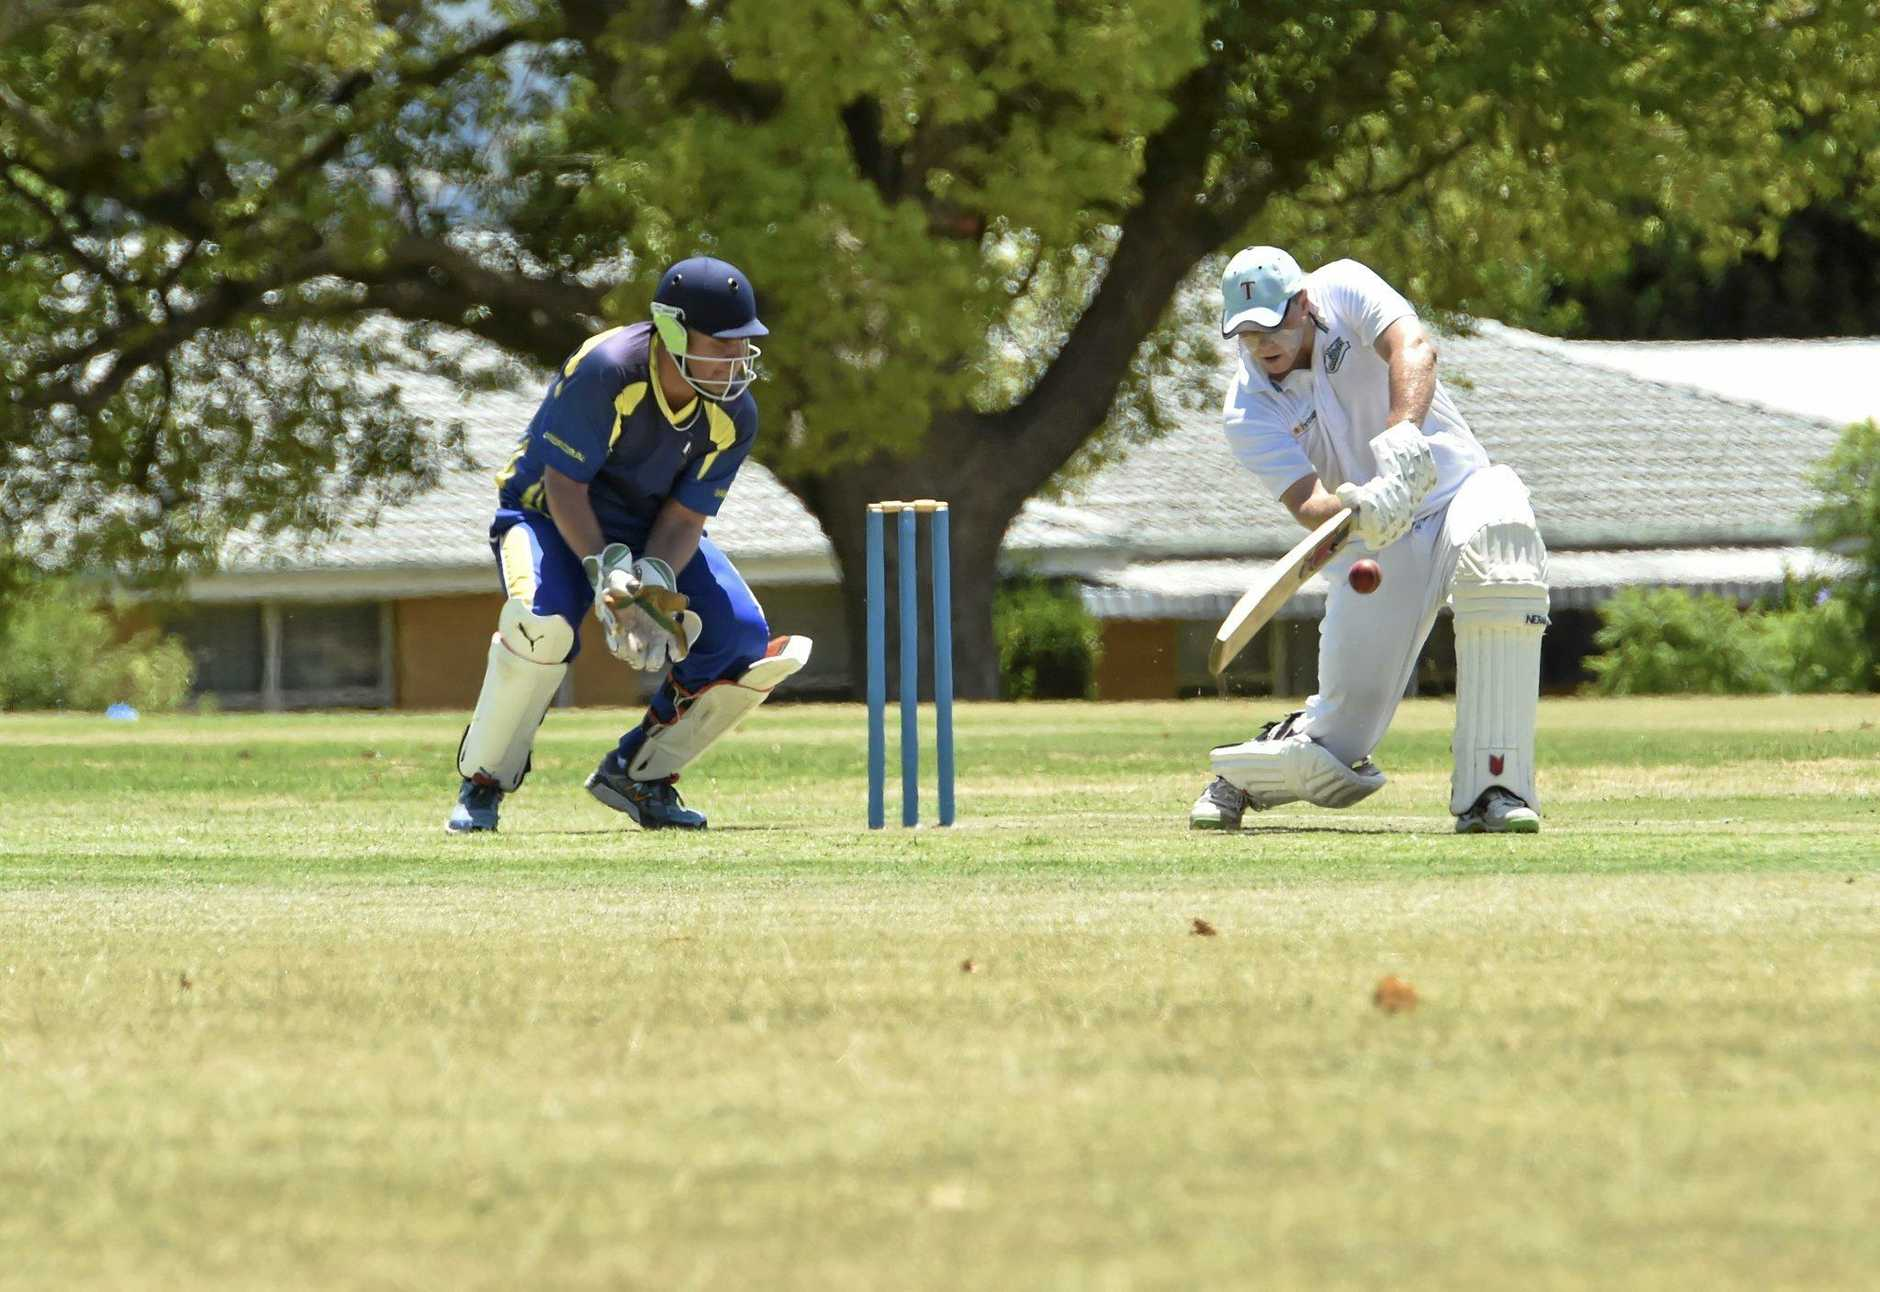 AT THE CREASE: Nick Gabbett bats for Toowoomba in the Plunkett Cup semi-final against Warehouse.